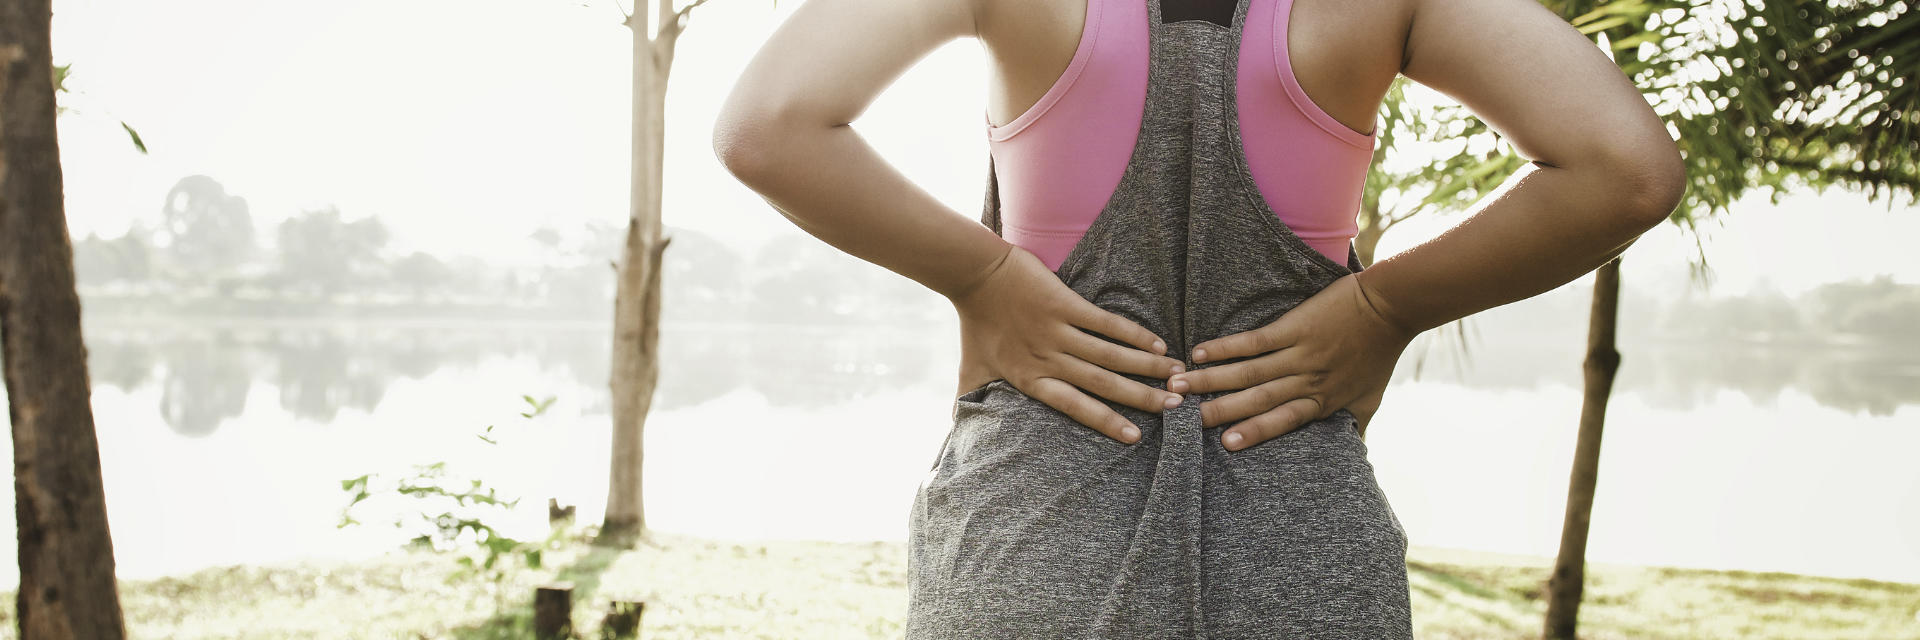 woman athlete's back pain hernia